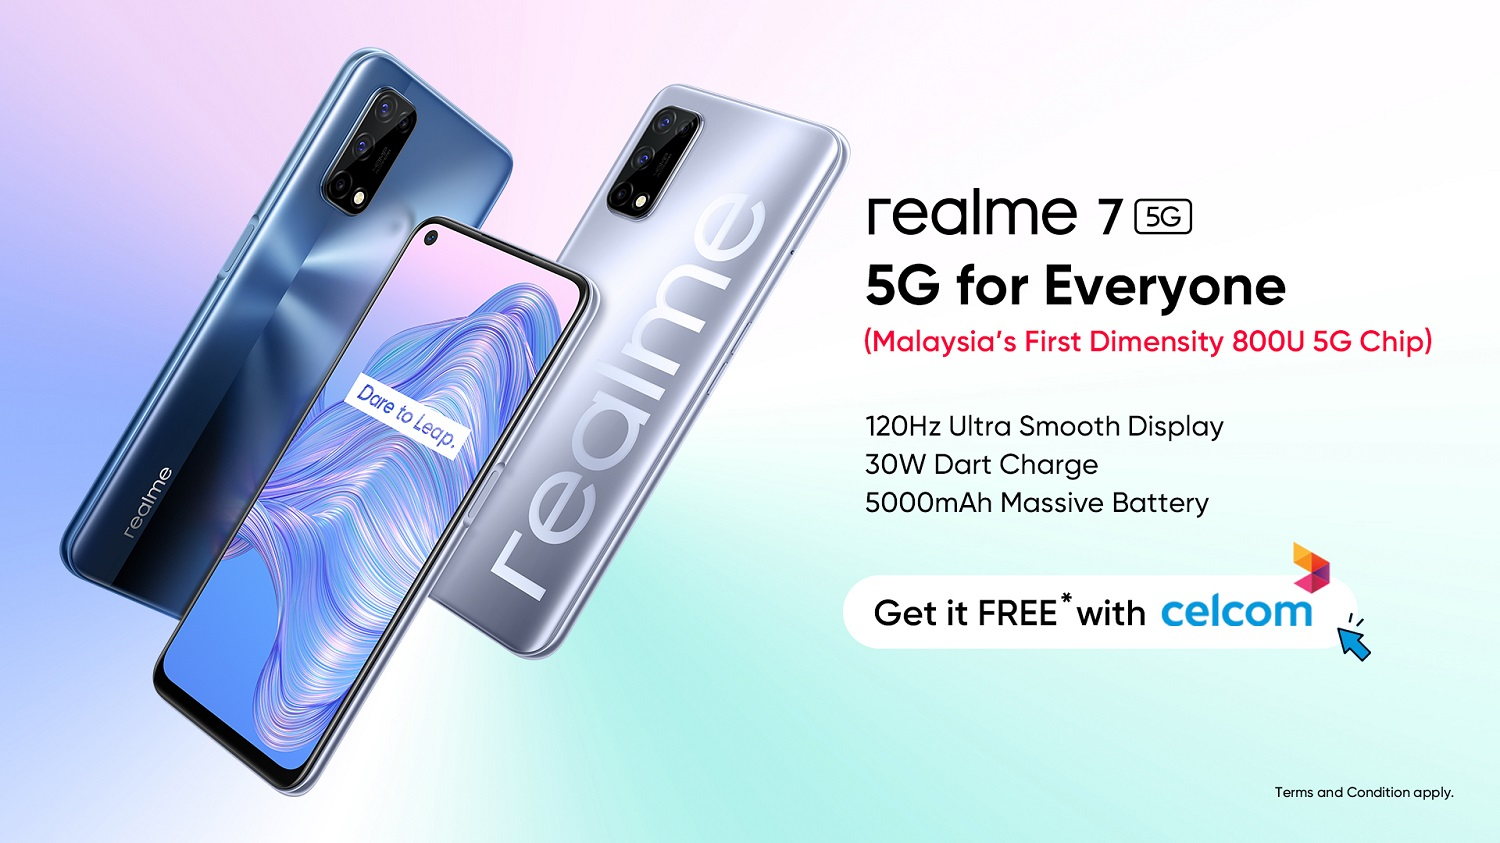 The realme 7 5G is Available Now With Celcom Mega